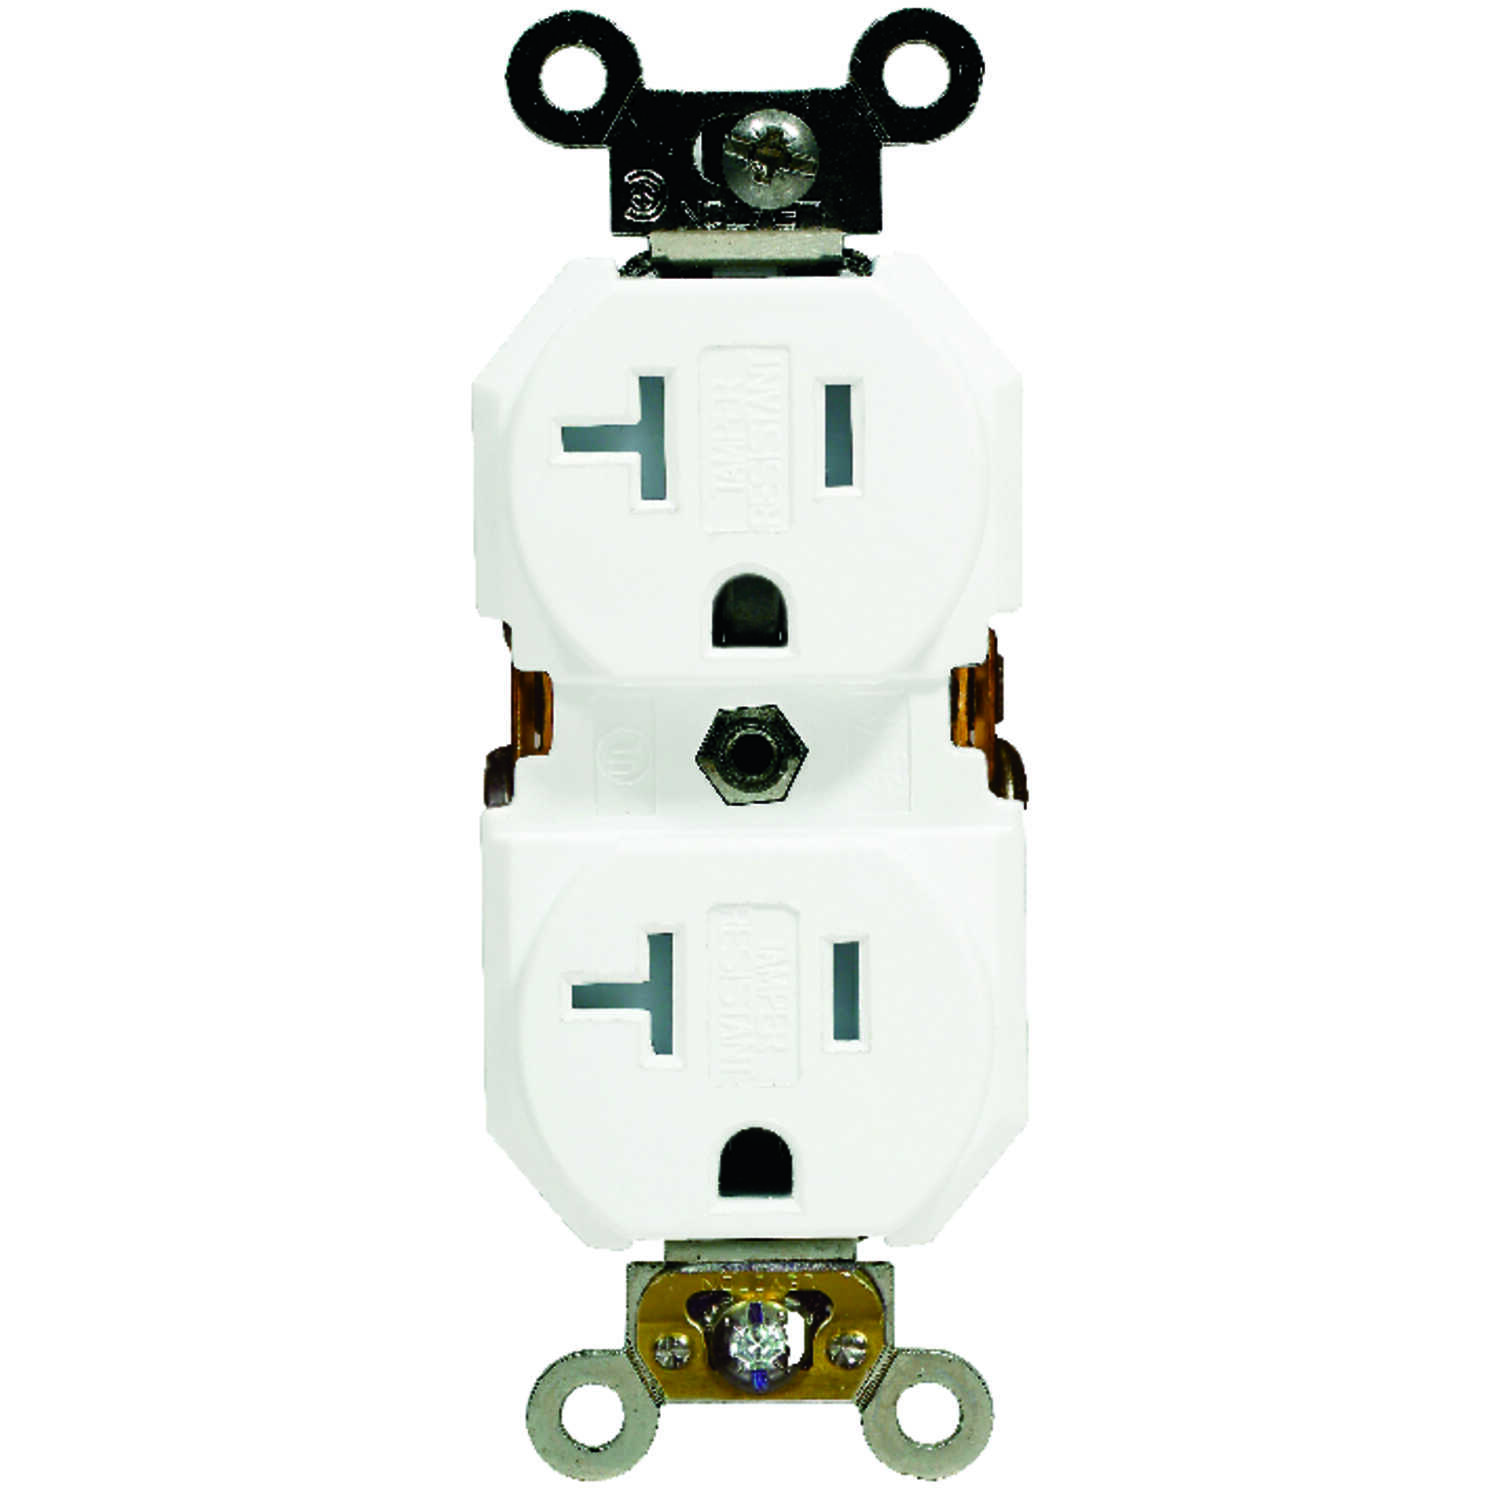 Leviton  20 amps 125 volt White  Outlet  5-20R  1 pk